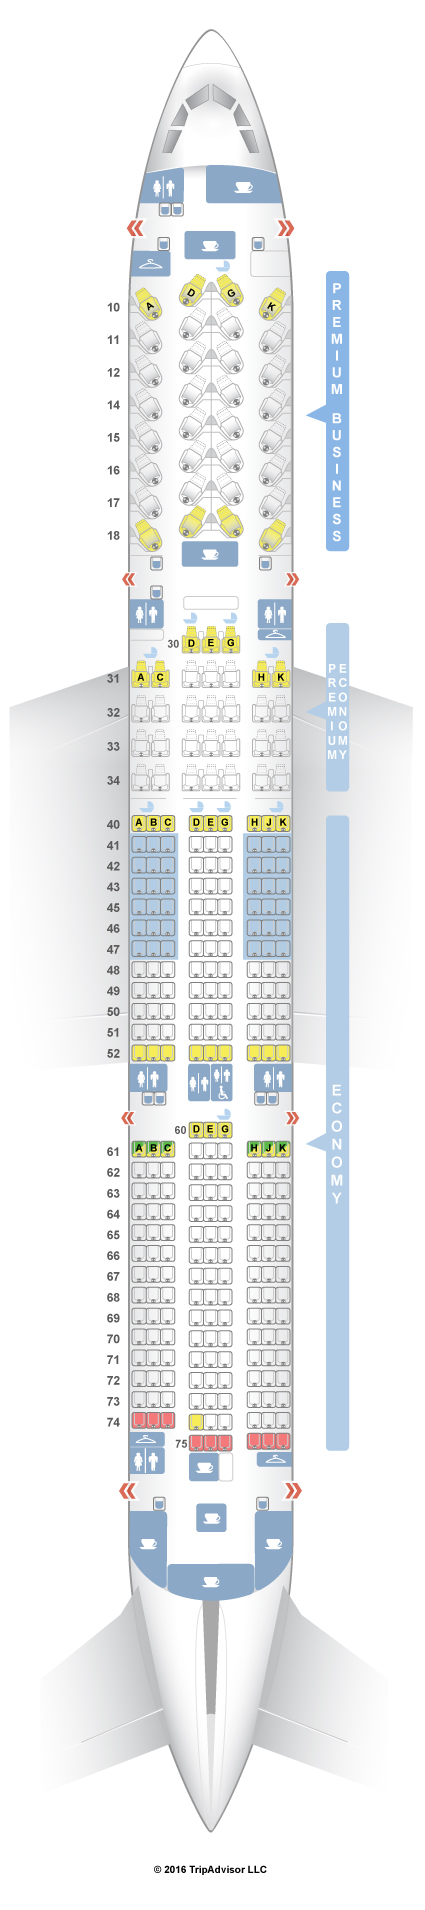 A350 Seat Map SeatGuru Seat Map China Airlines